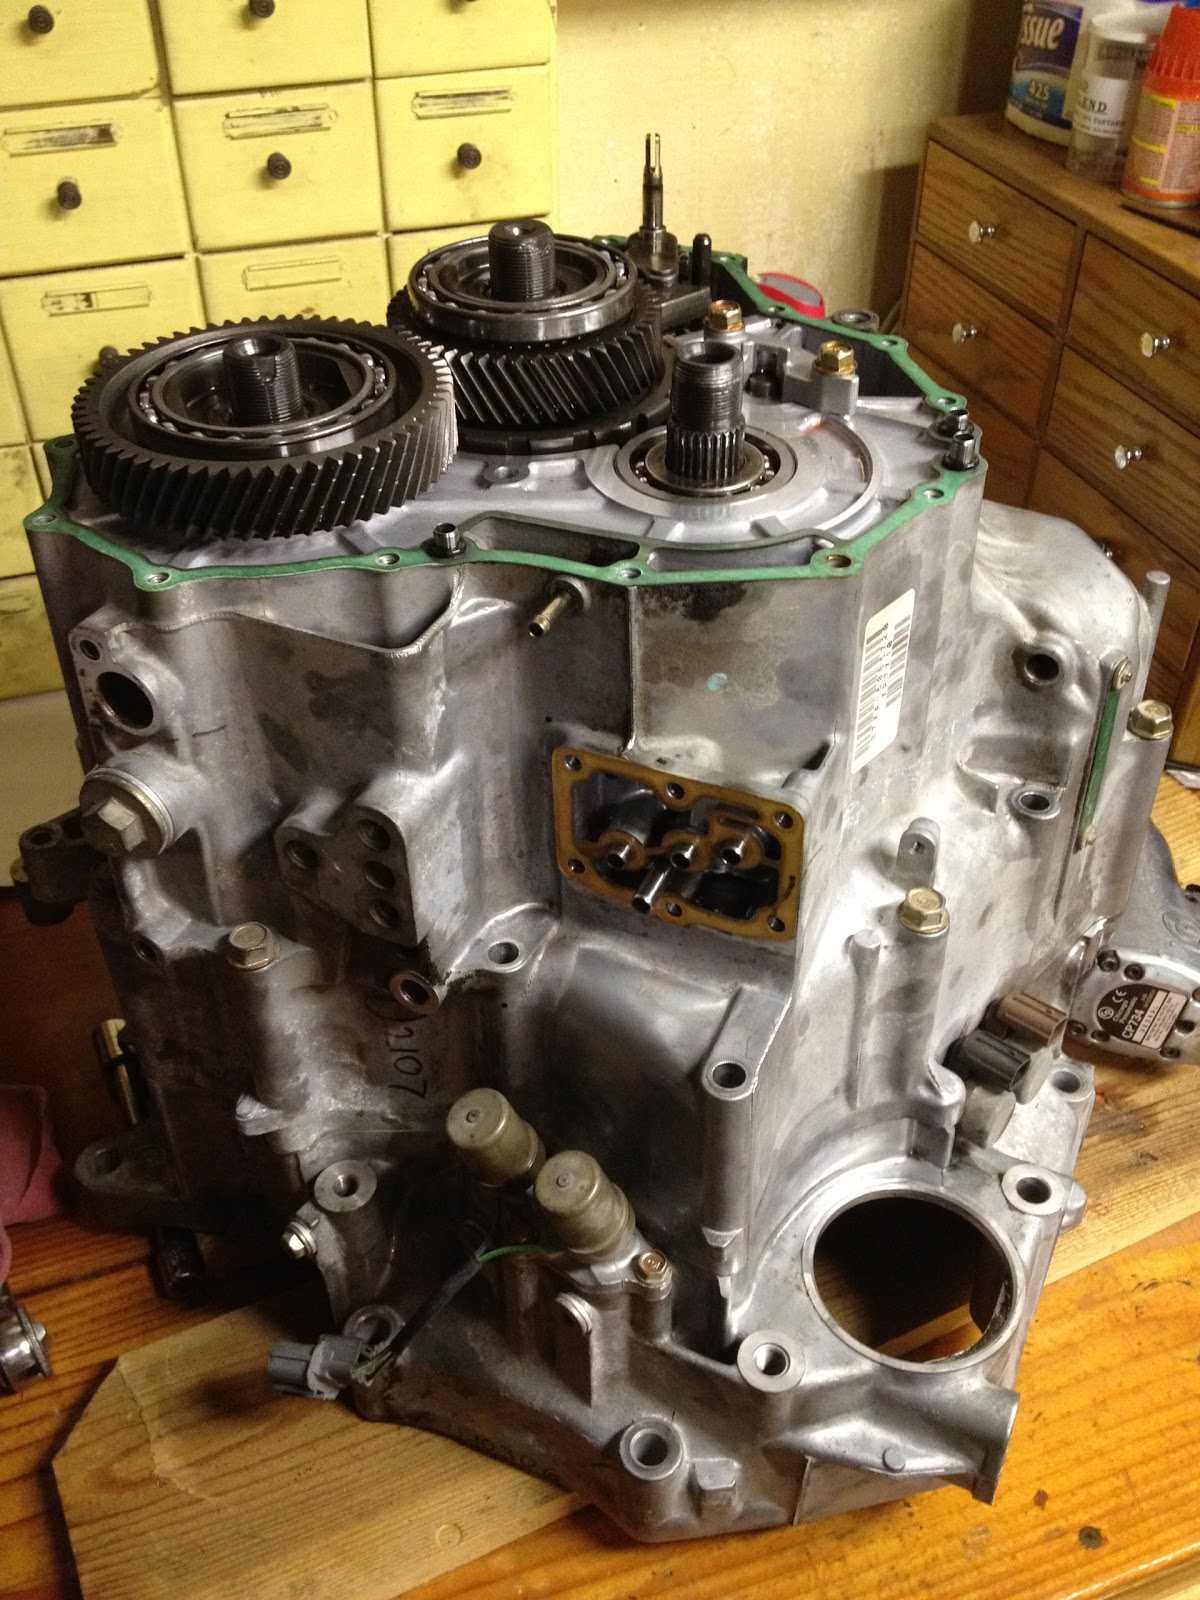 The transmission sitting on the work bench